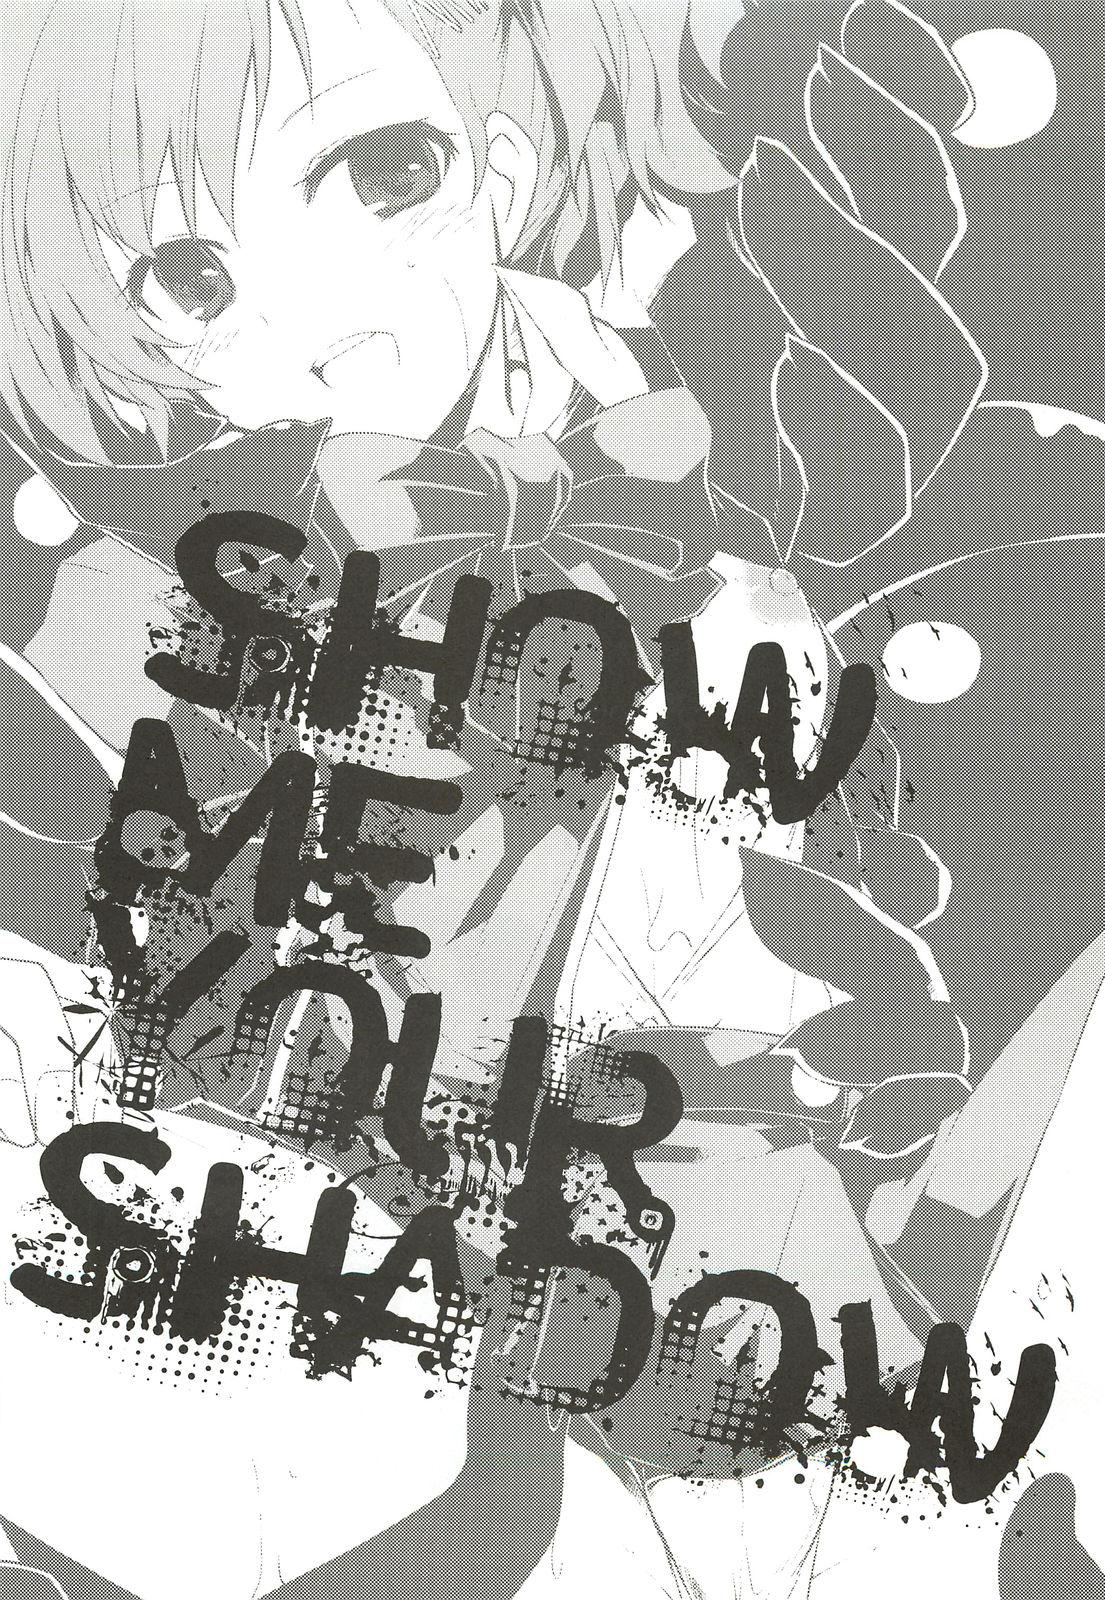 Show me your shadow 2